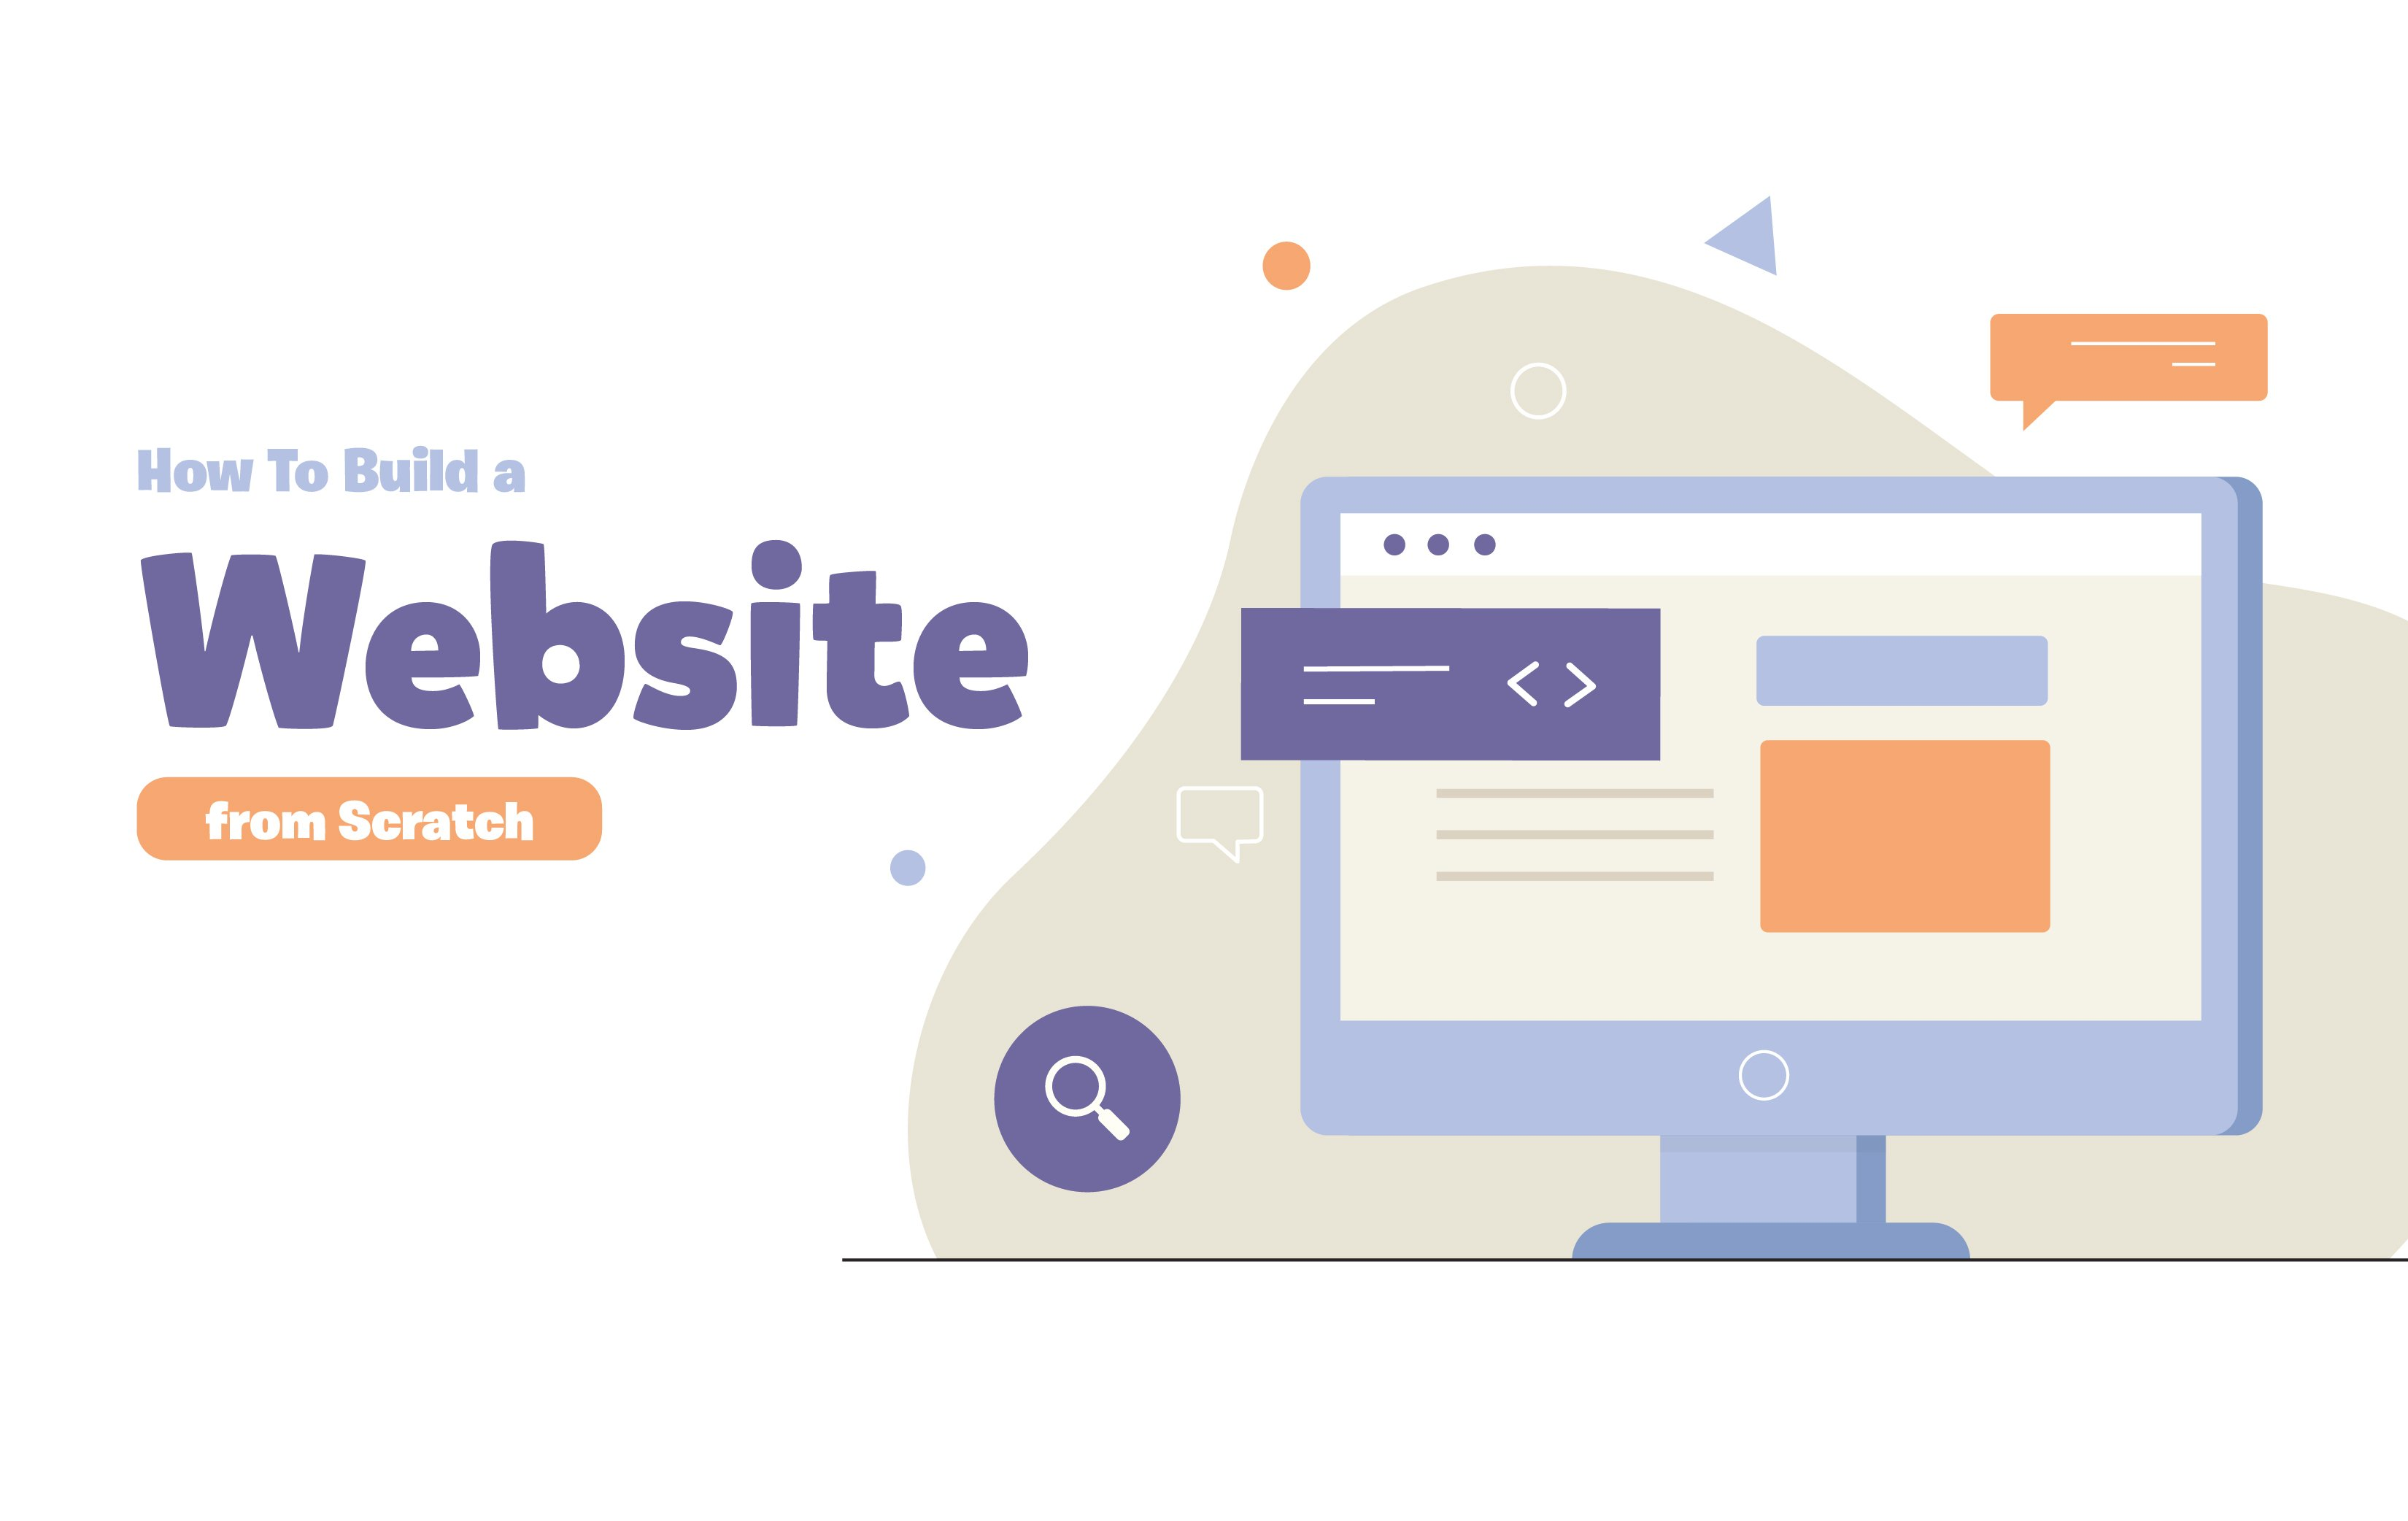 How To Build a Website from Scratch (Beginners Guide)